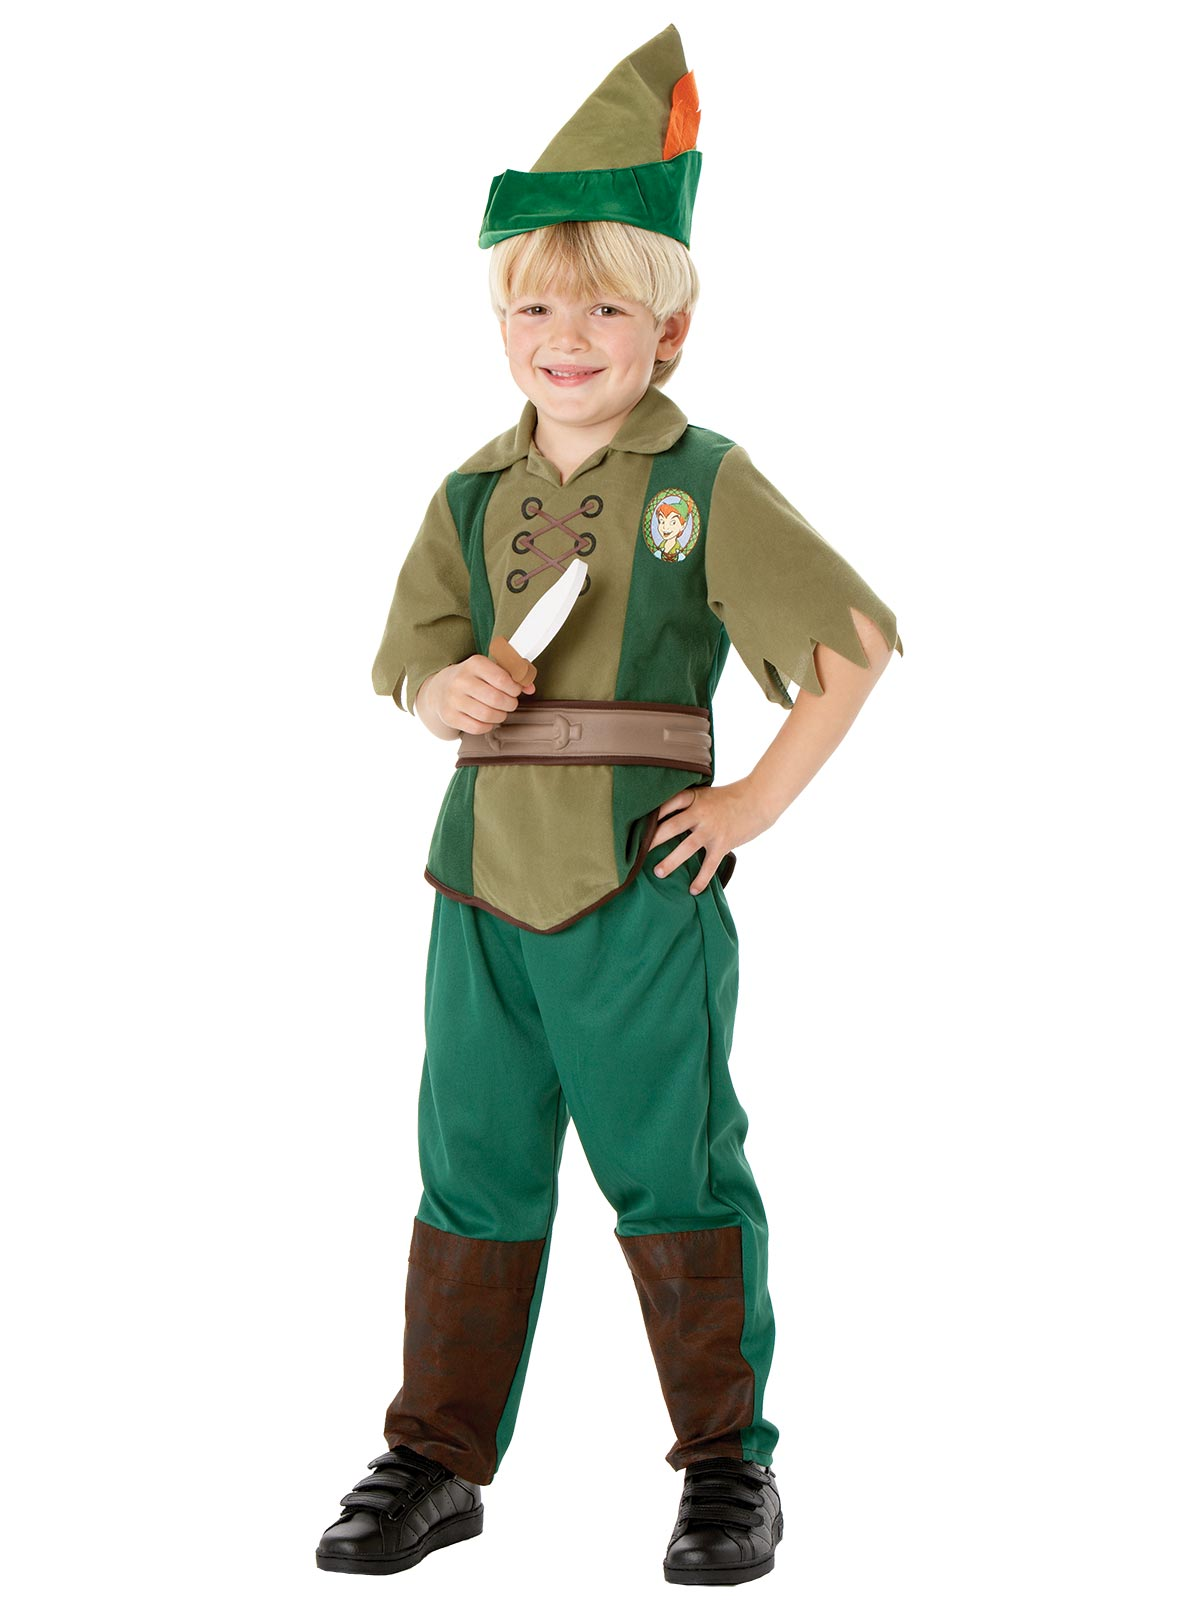 Peter Pan Deluxe Child Costume - Buy Online Only